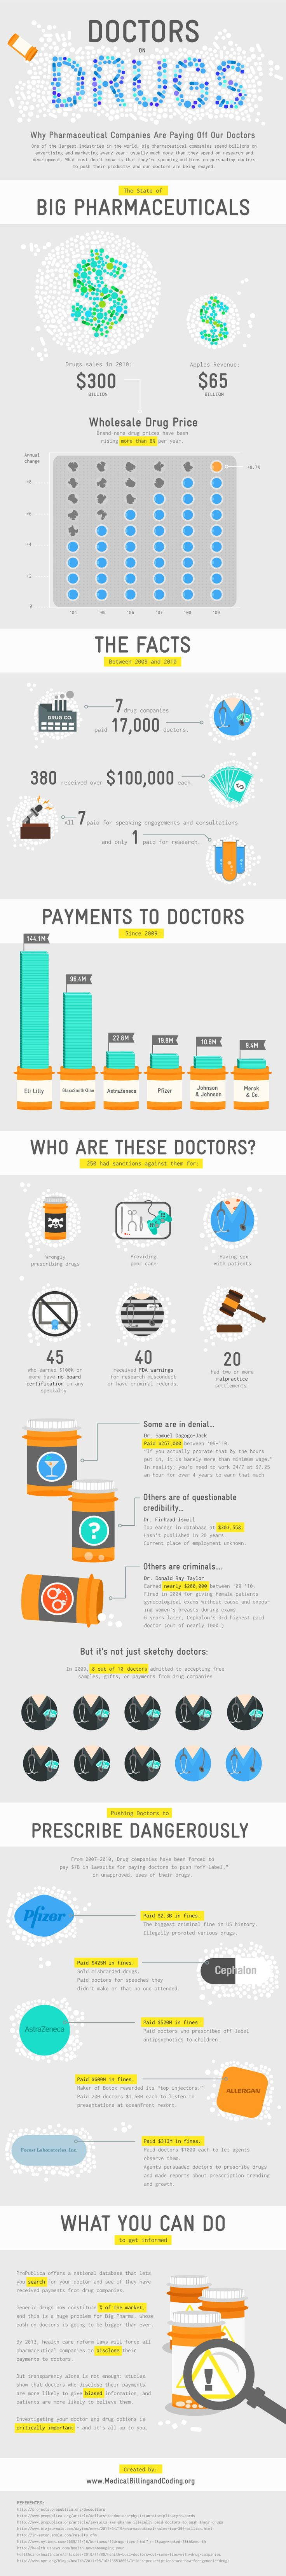 Doctors on Drugs infographics from medicalbillingandcoding - the doctor/pharmaceutical  relationship contributing to rising #healthcare costs http://www.medicalbillingandcoding.org/doctors-on-drugs/